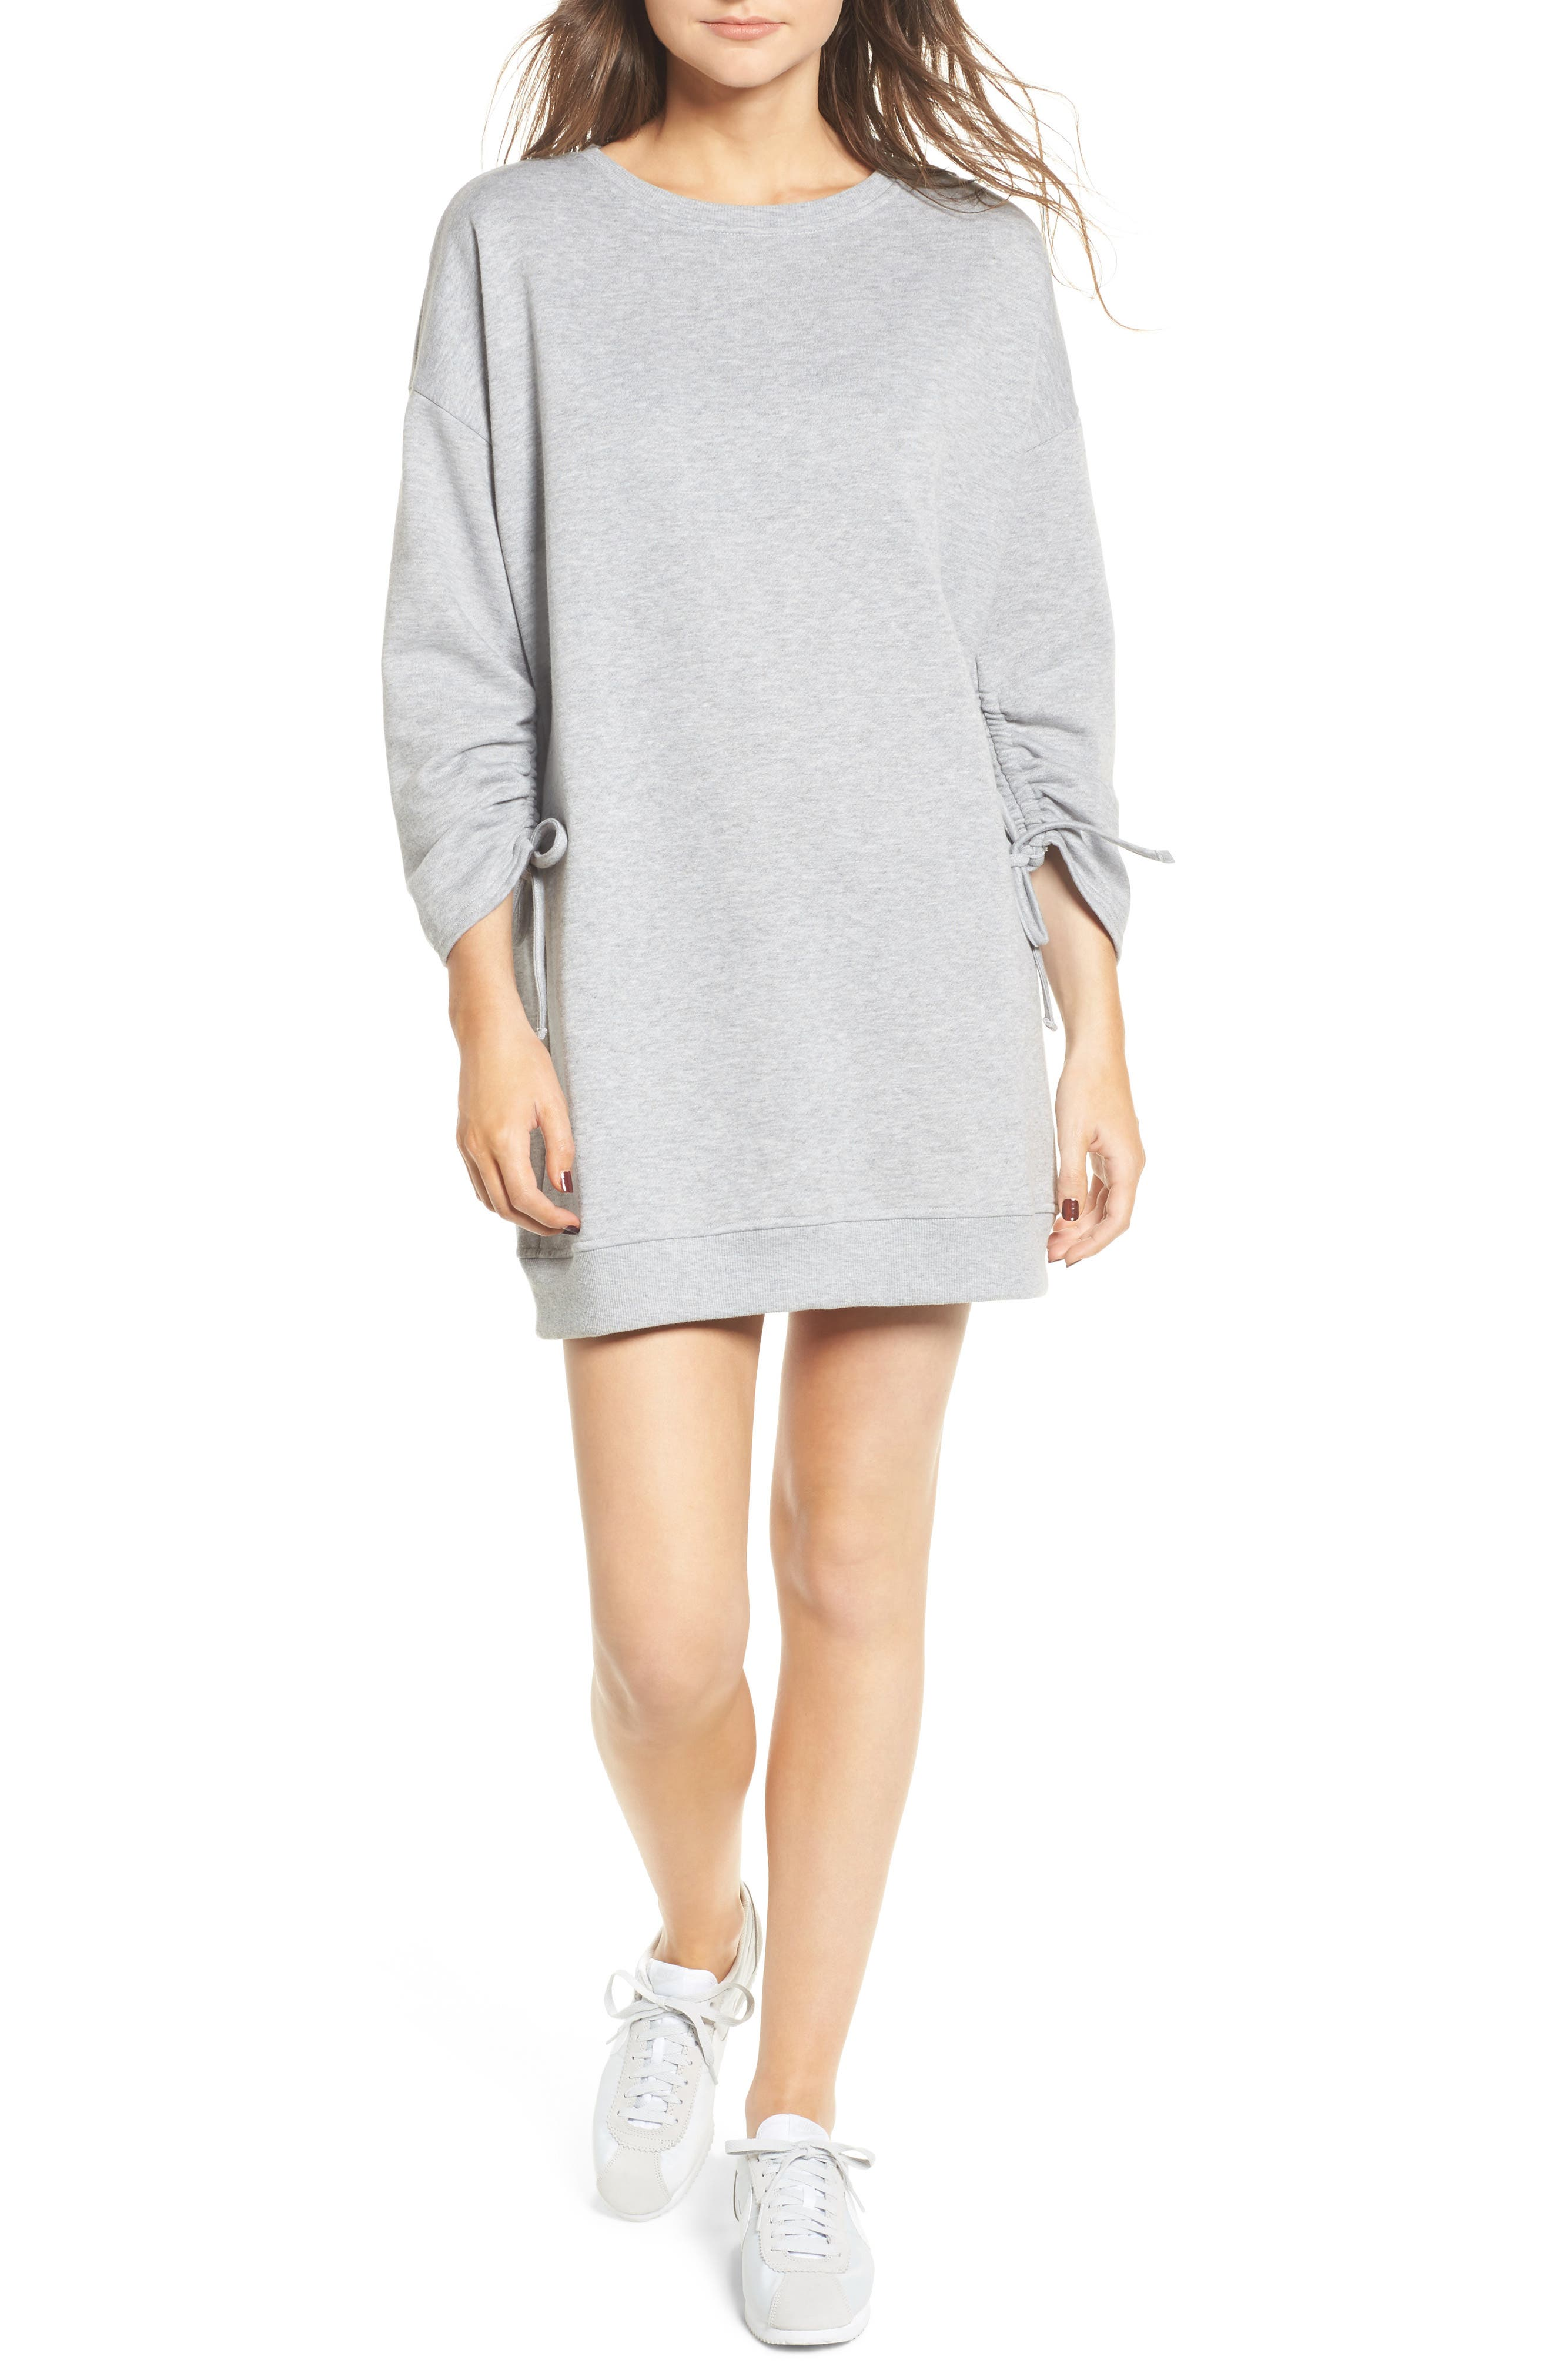 Ruched Sleeve Sweatshirt Dress,                         Main,                         color, Heather Grey